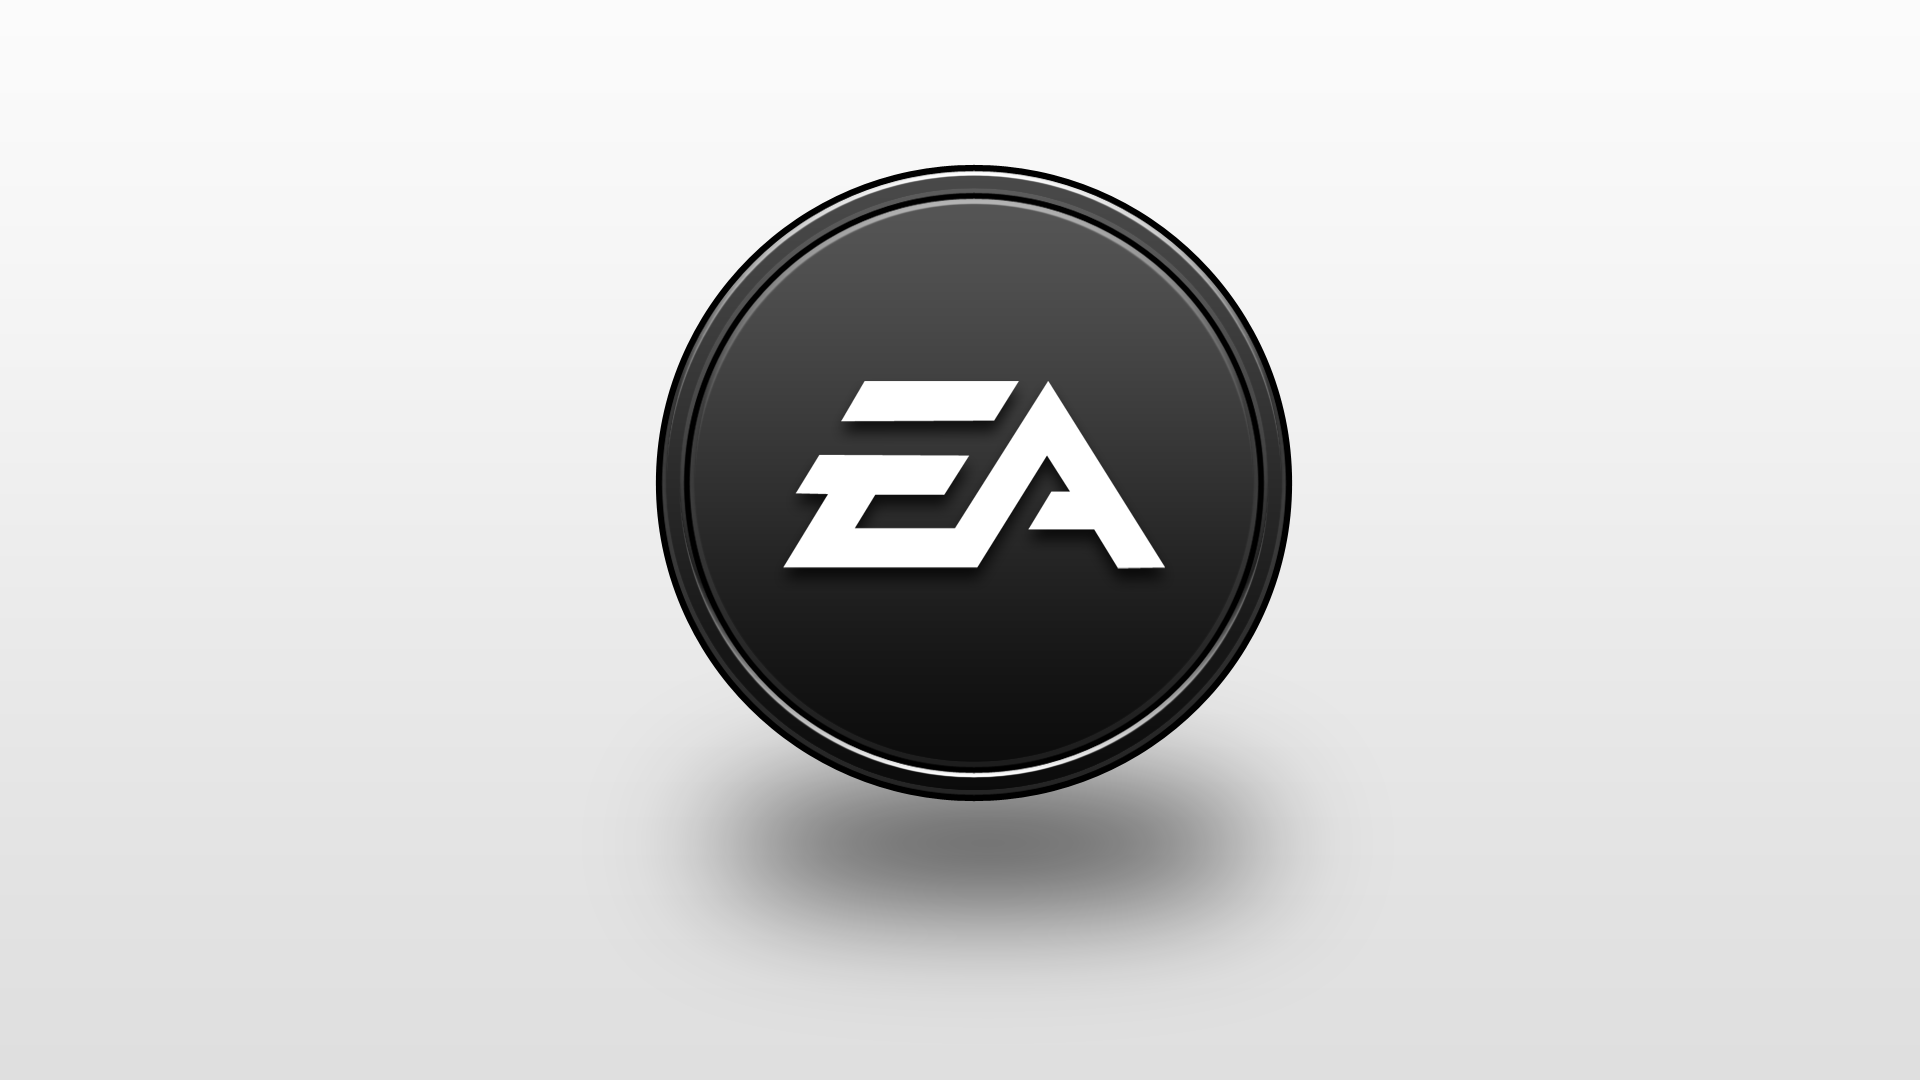 Ea Png 1920 1080 Electronic Art Video Game Jobs Video Game Tester